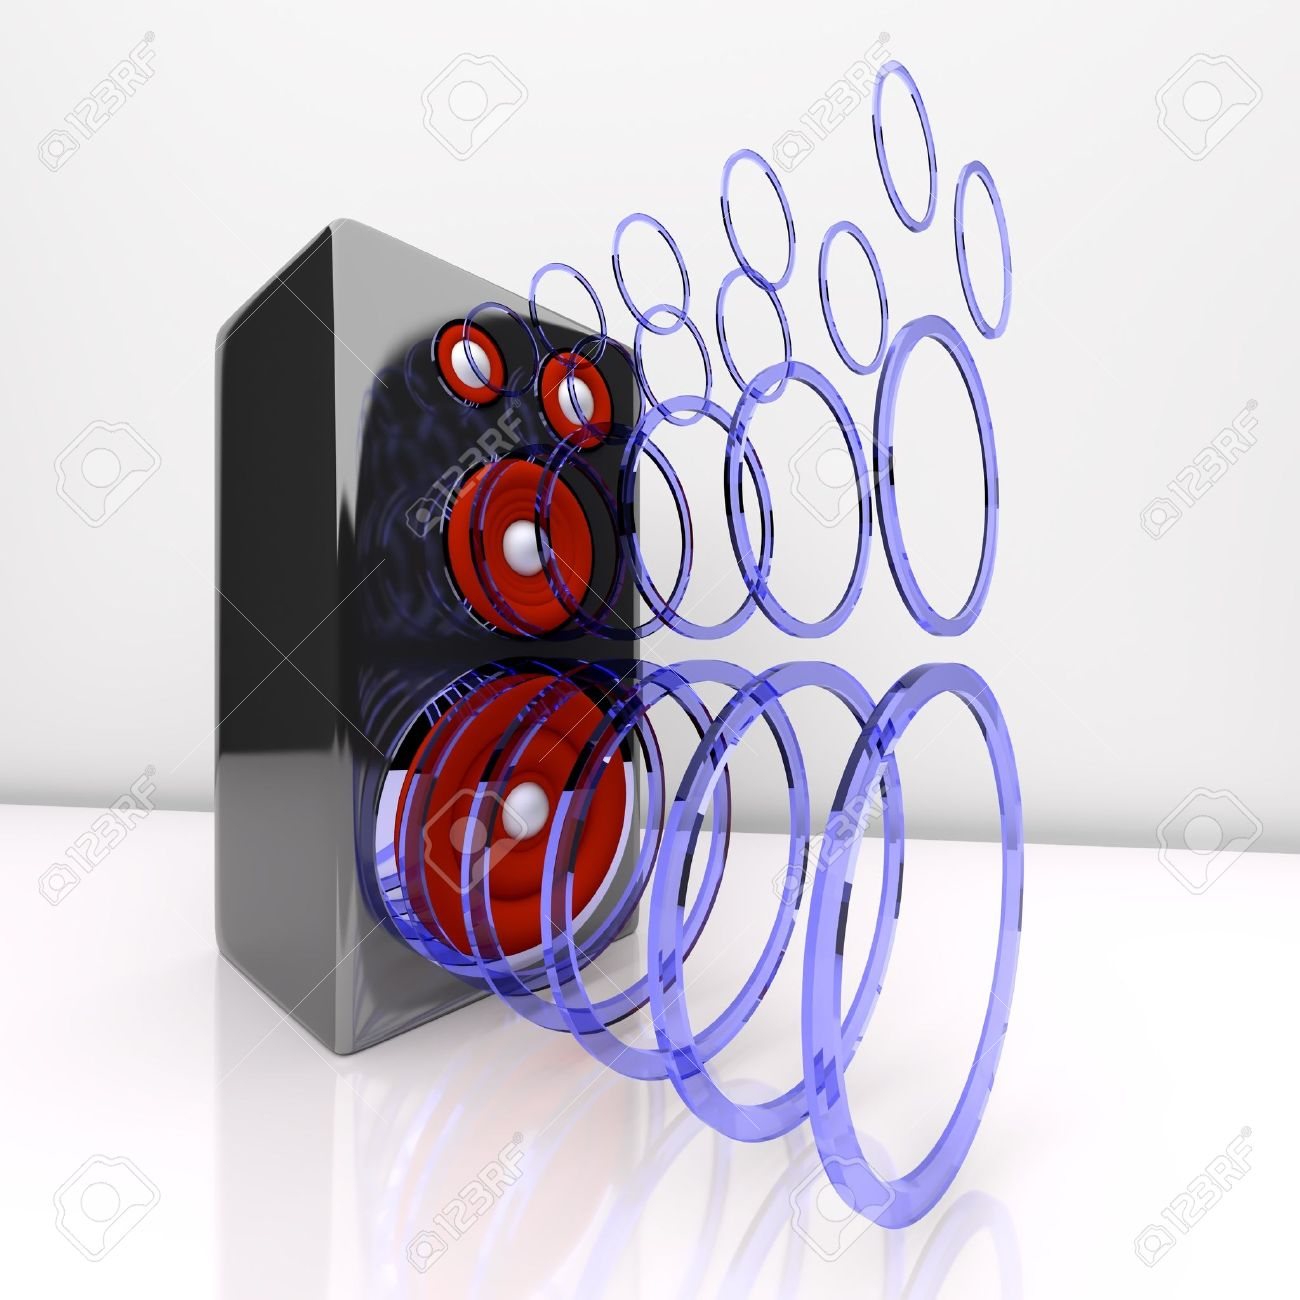 1300x1300 Speaker Playing Sound With Sound Waves Stock Photo, Picture